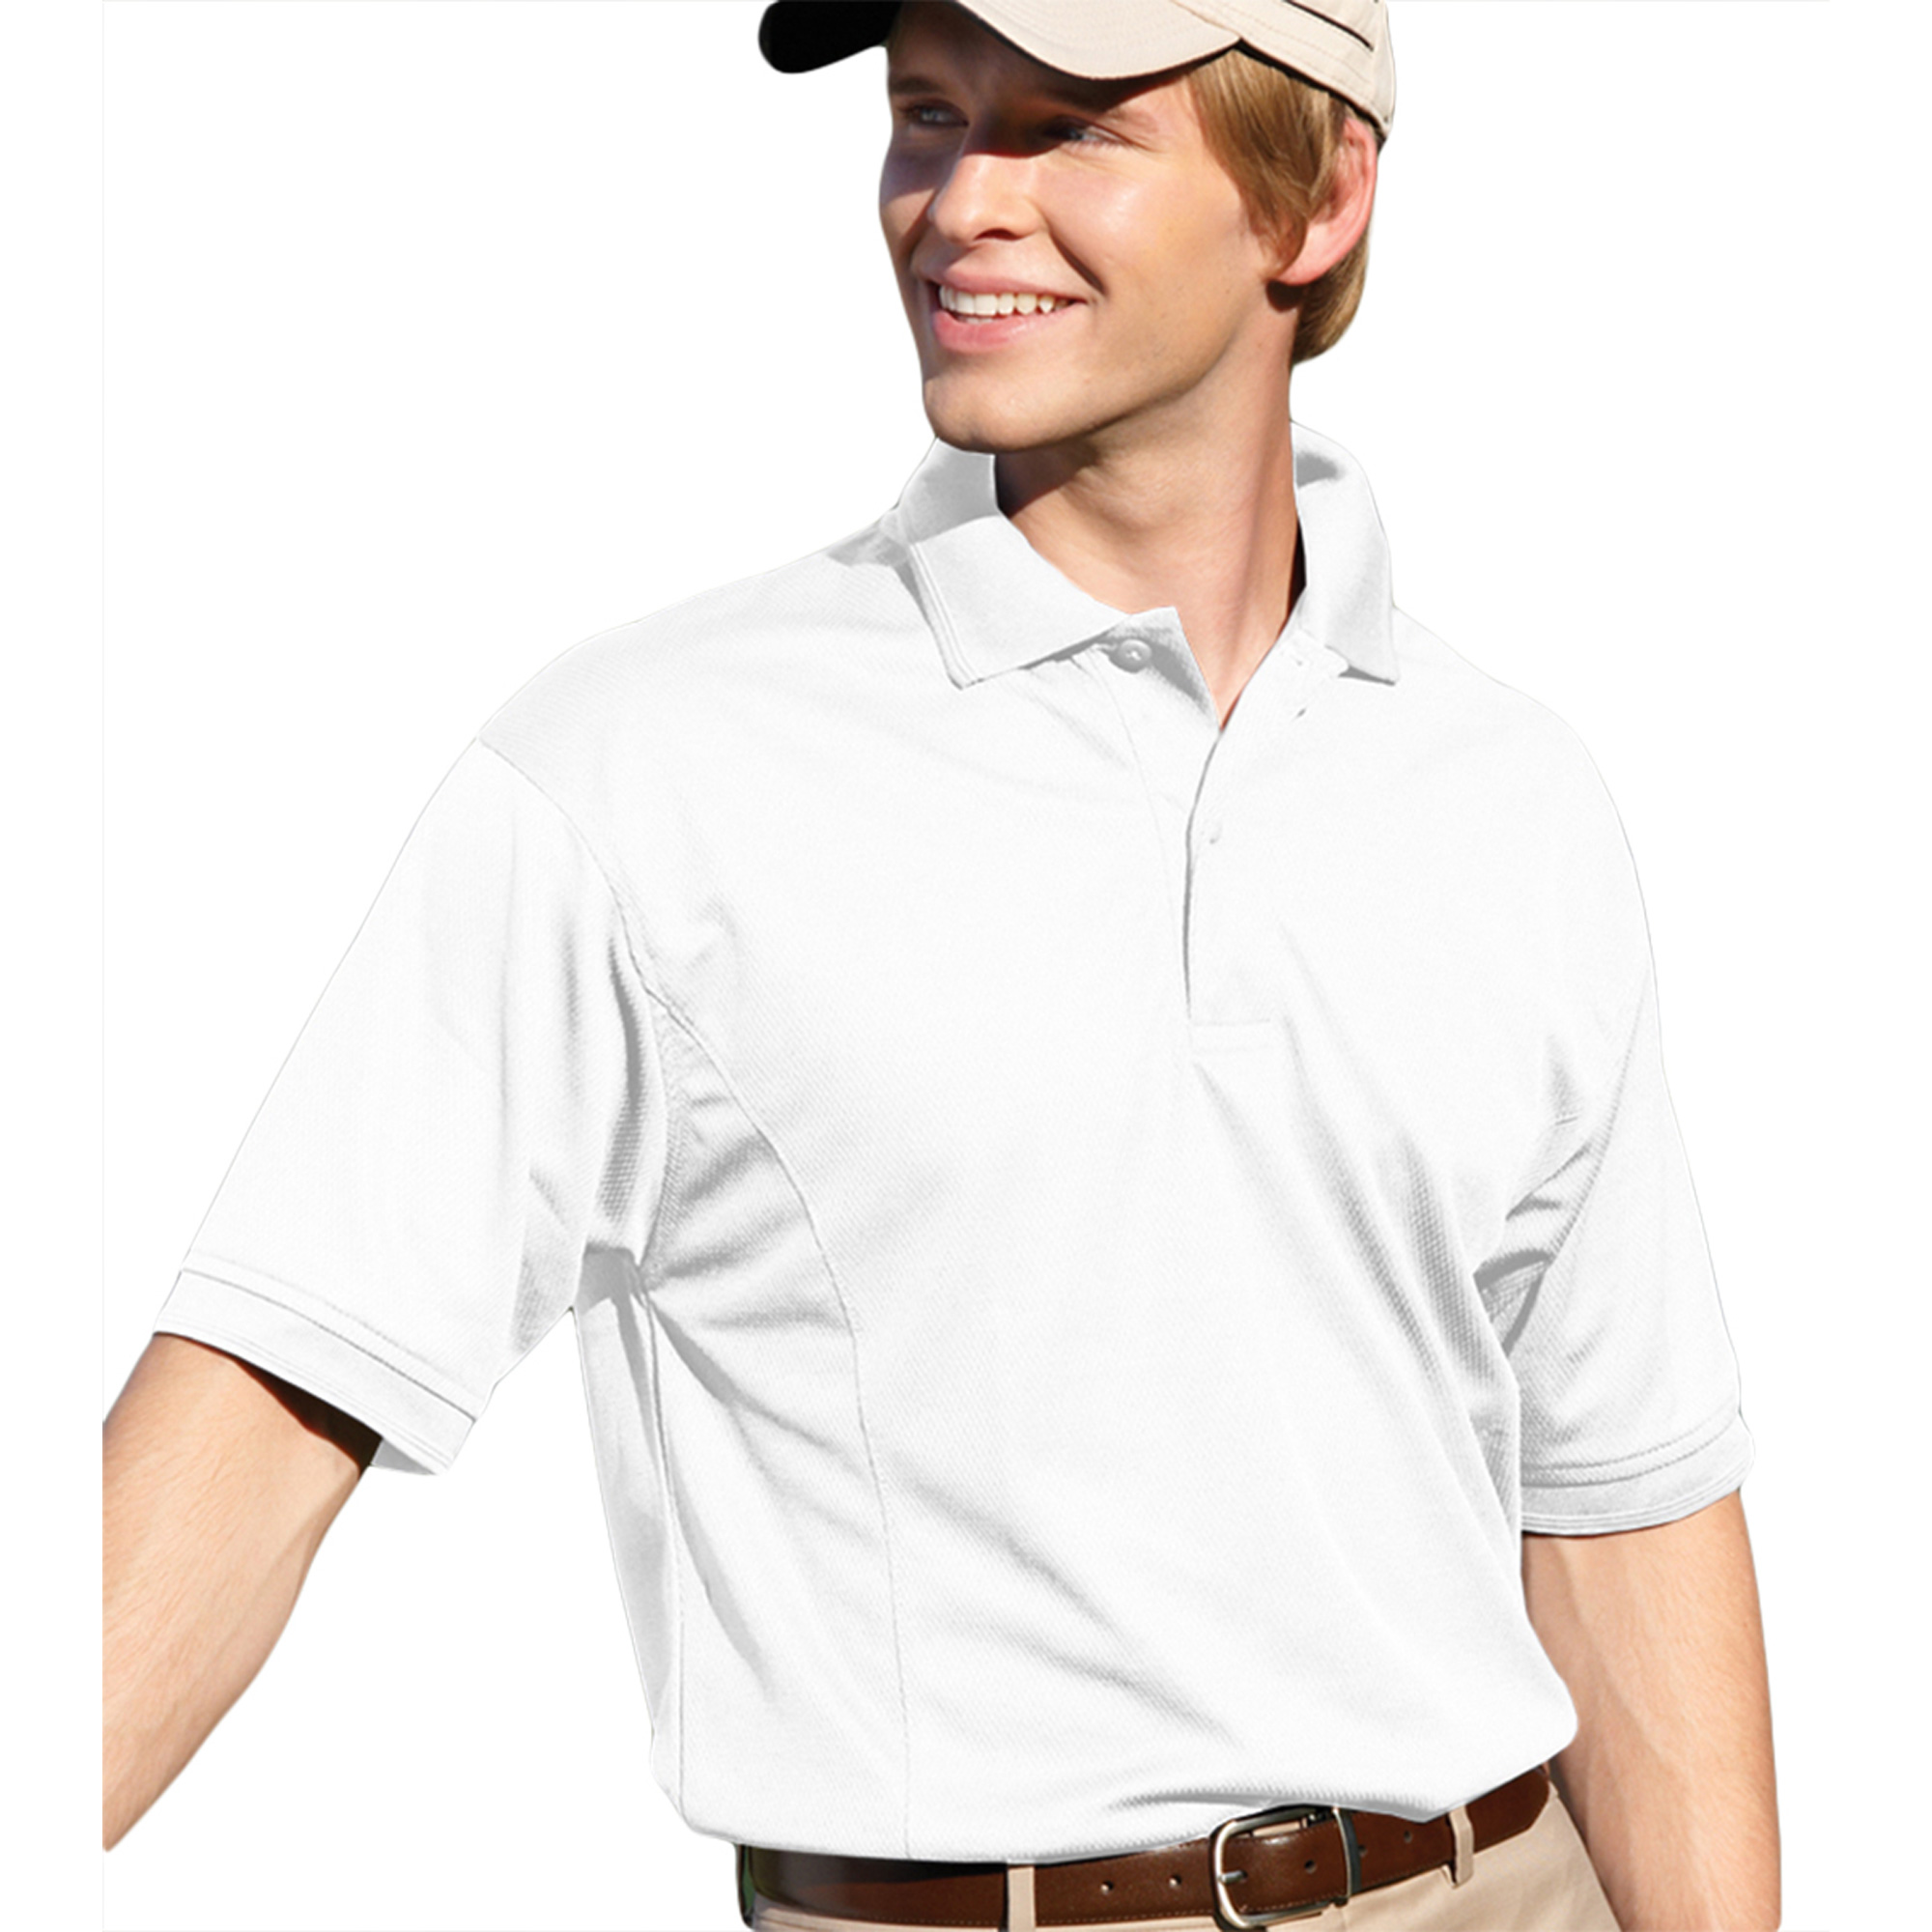 00820599180842 MENS PERFORMANCE GOLF SHIRT 2800 RED XL